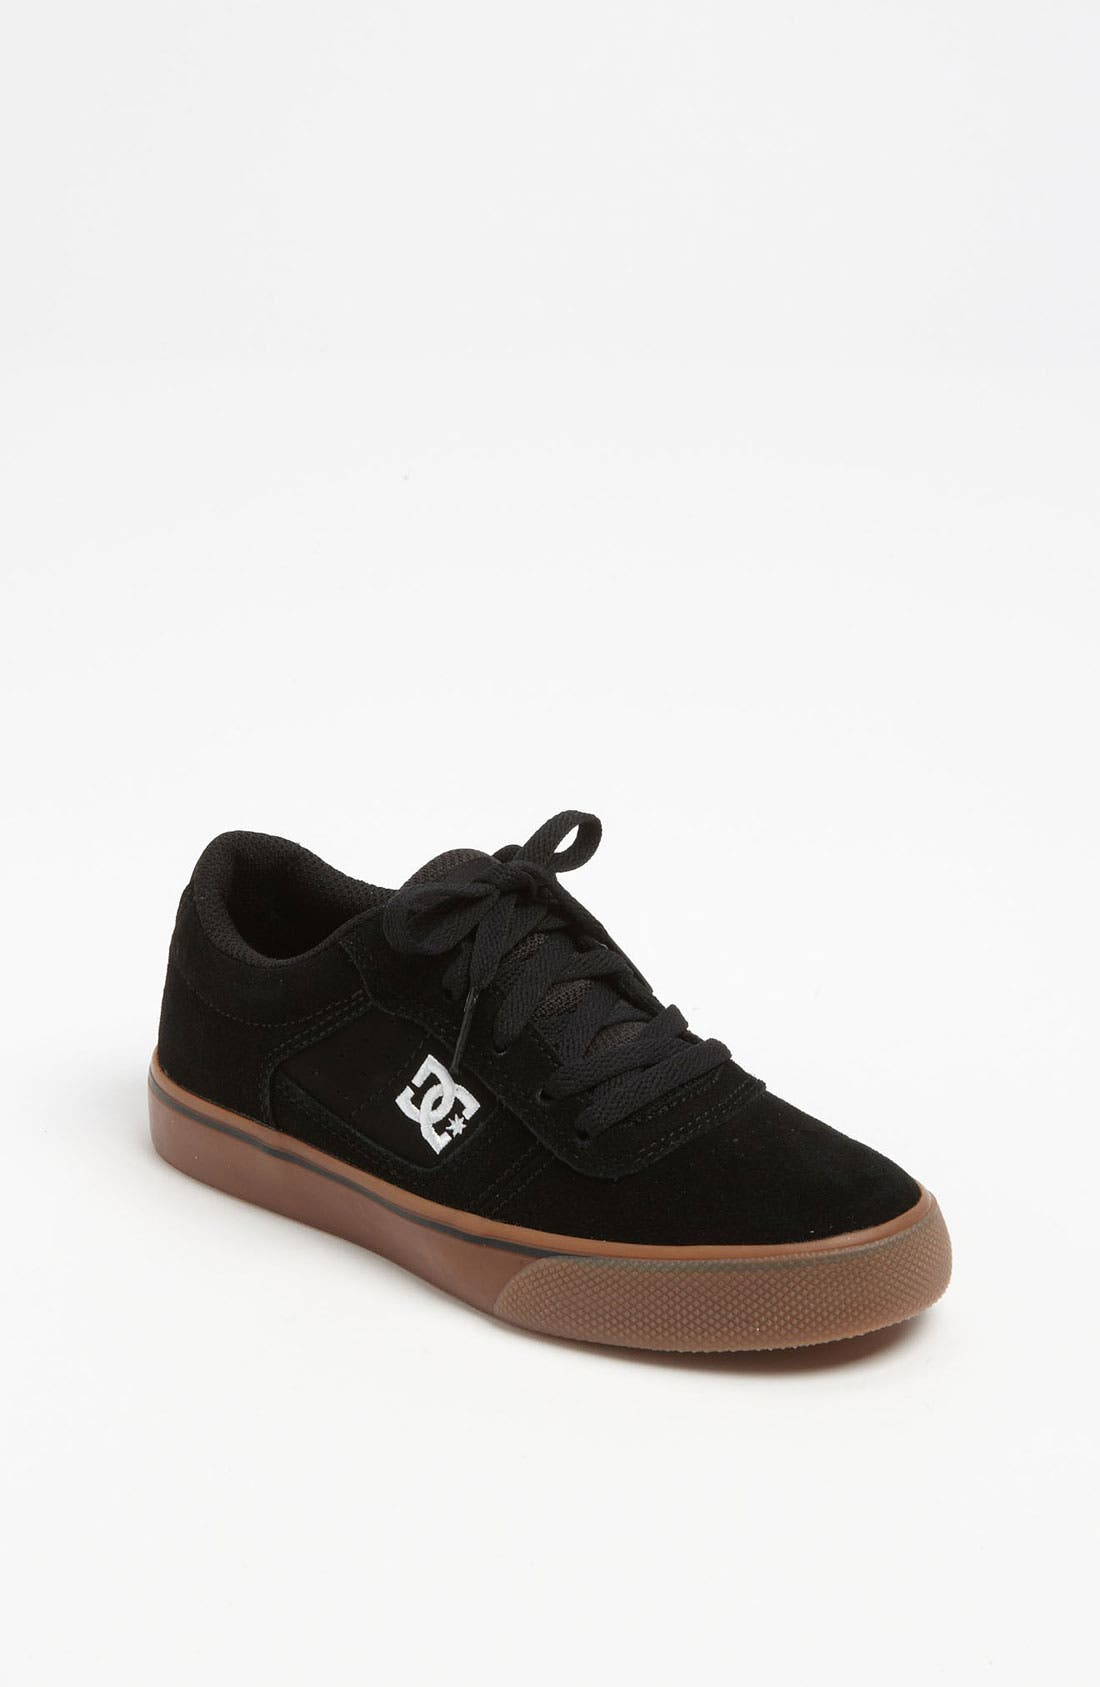 Alternate Image 1 Selected - DC SHOES COLE PRO SNEAKER